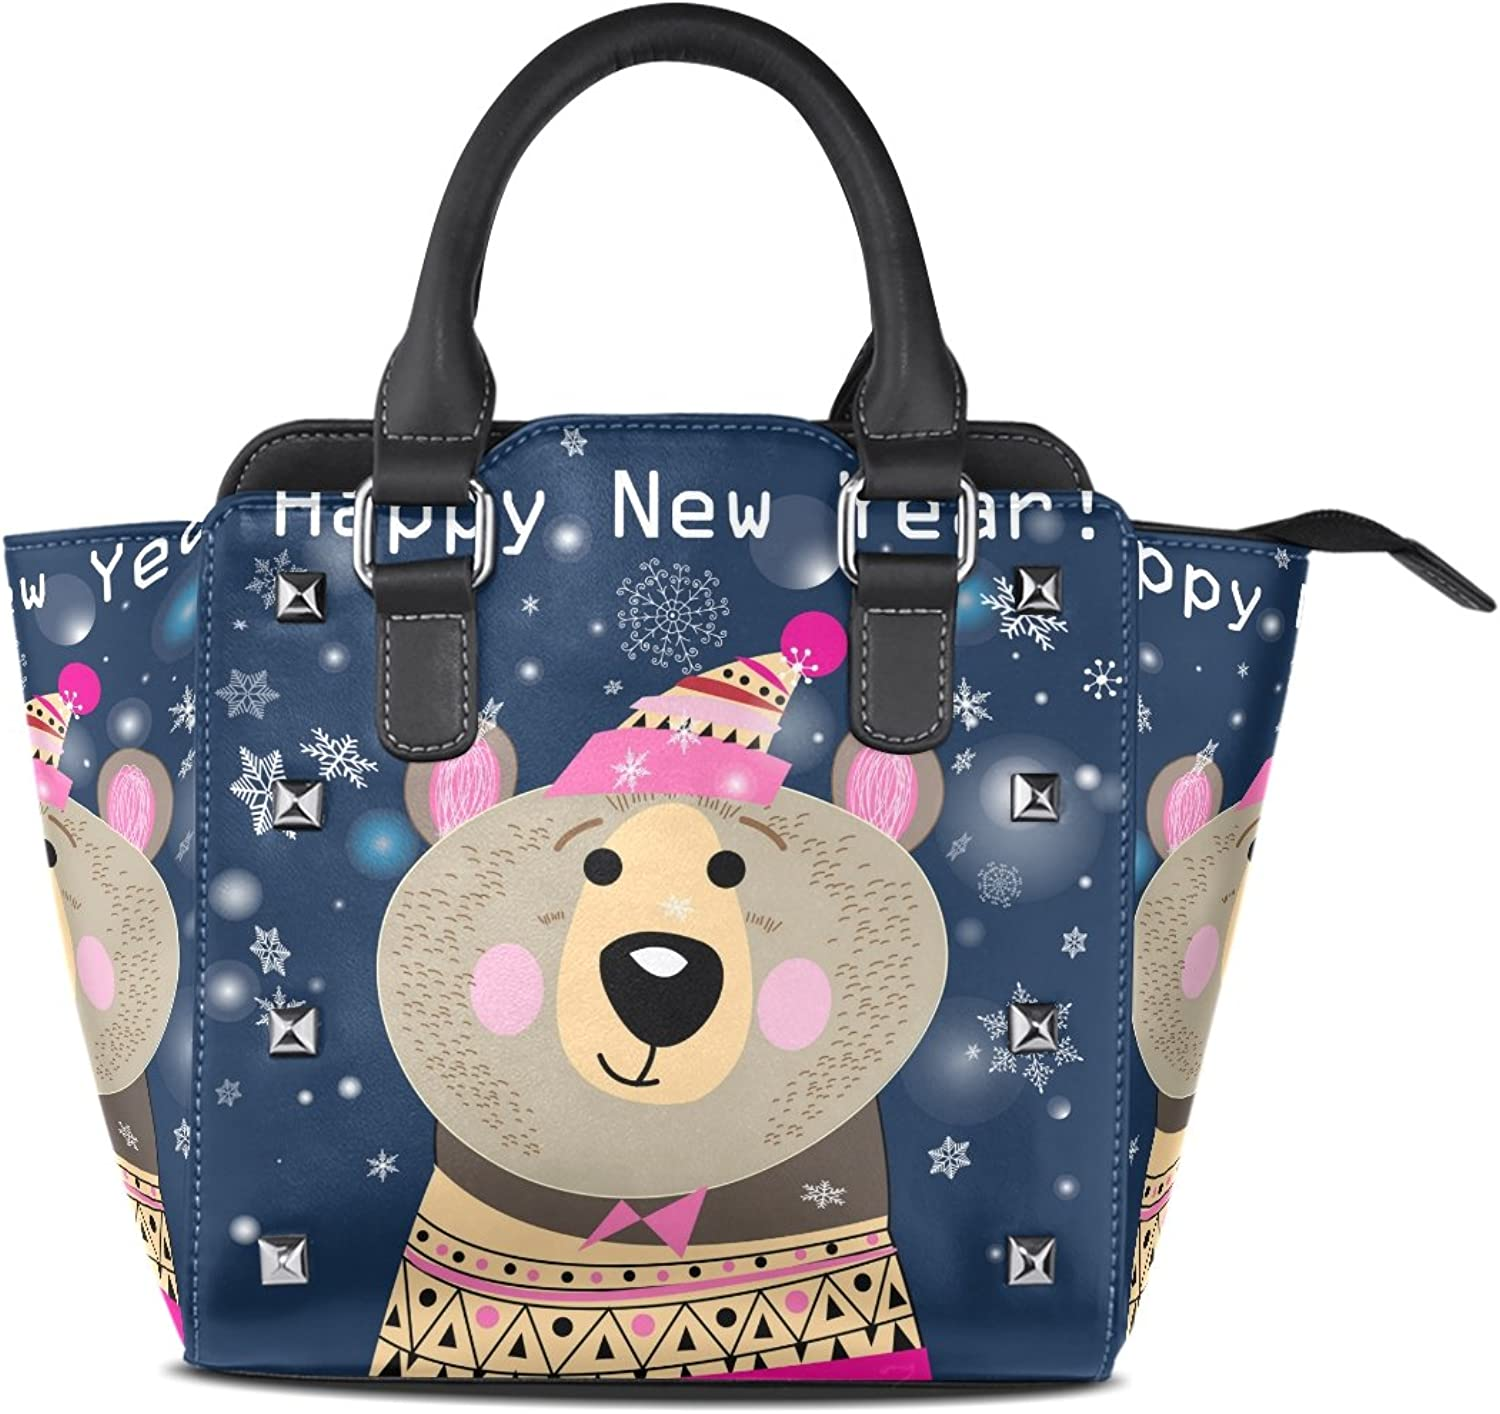 My Little Nest Women's Top Handle Satchel Handbag Happy New Year Bear Snowflake Ladies PU Leather Shoulder Bag Crossbody Bag